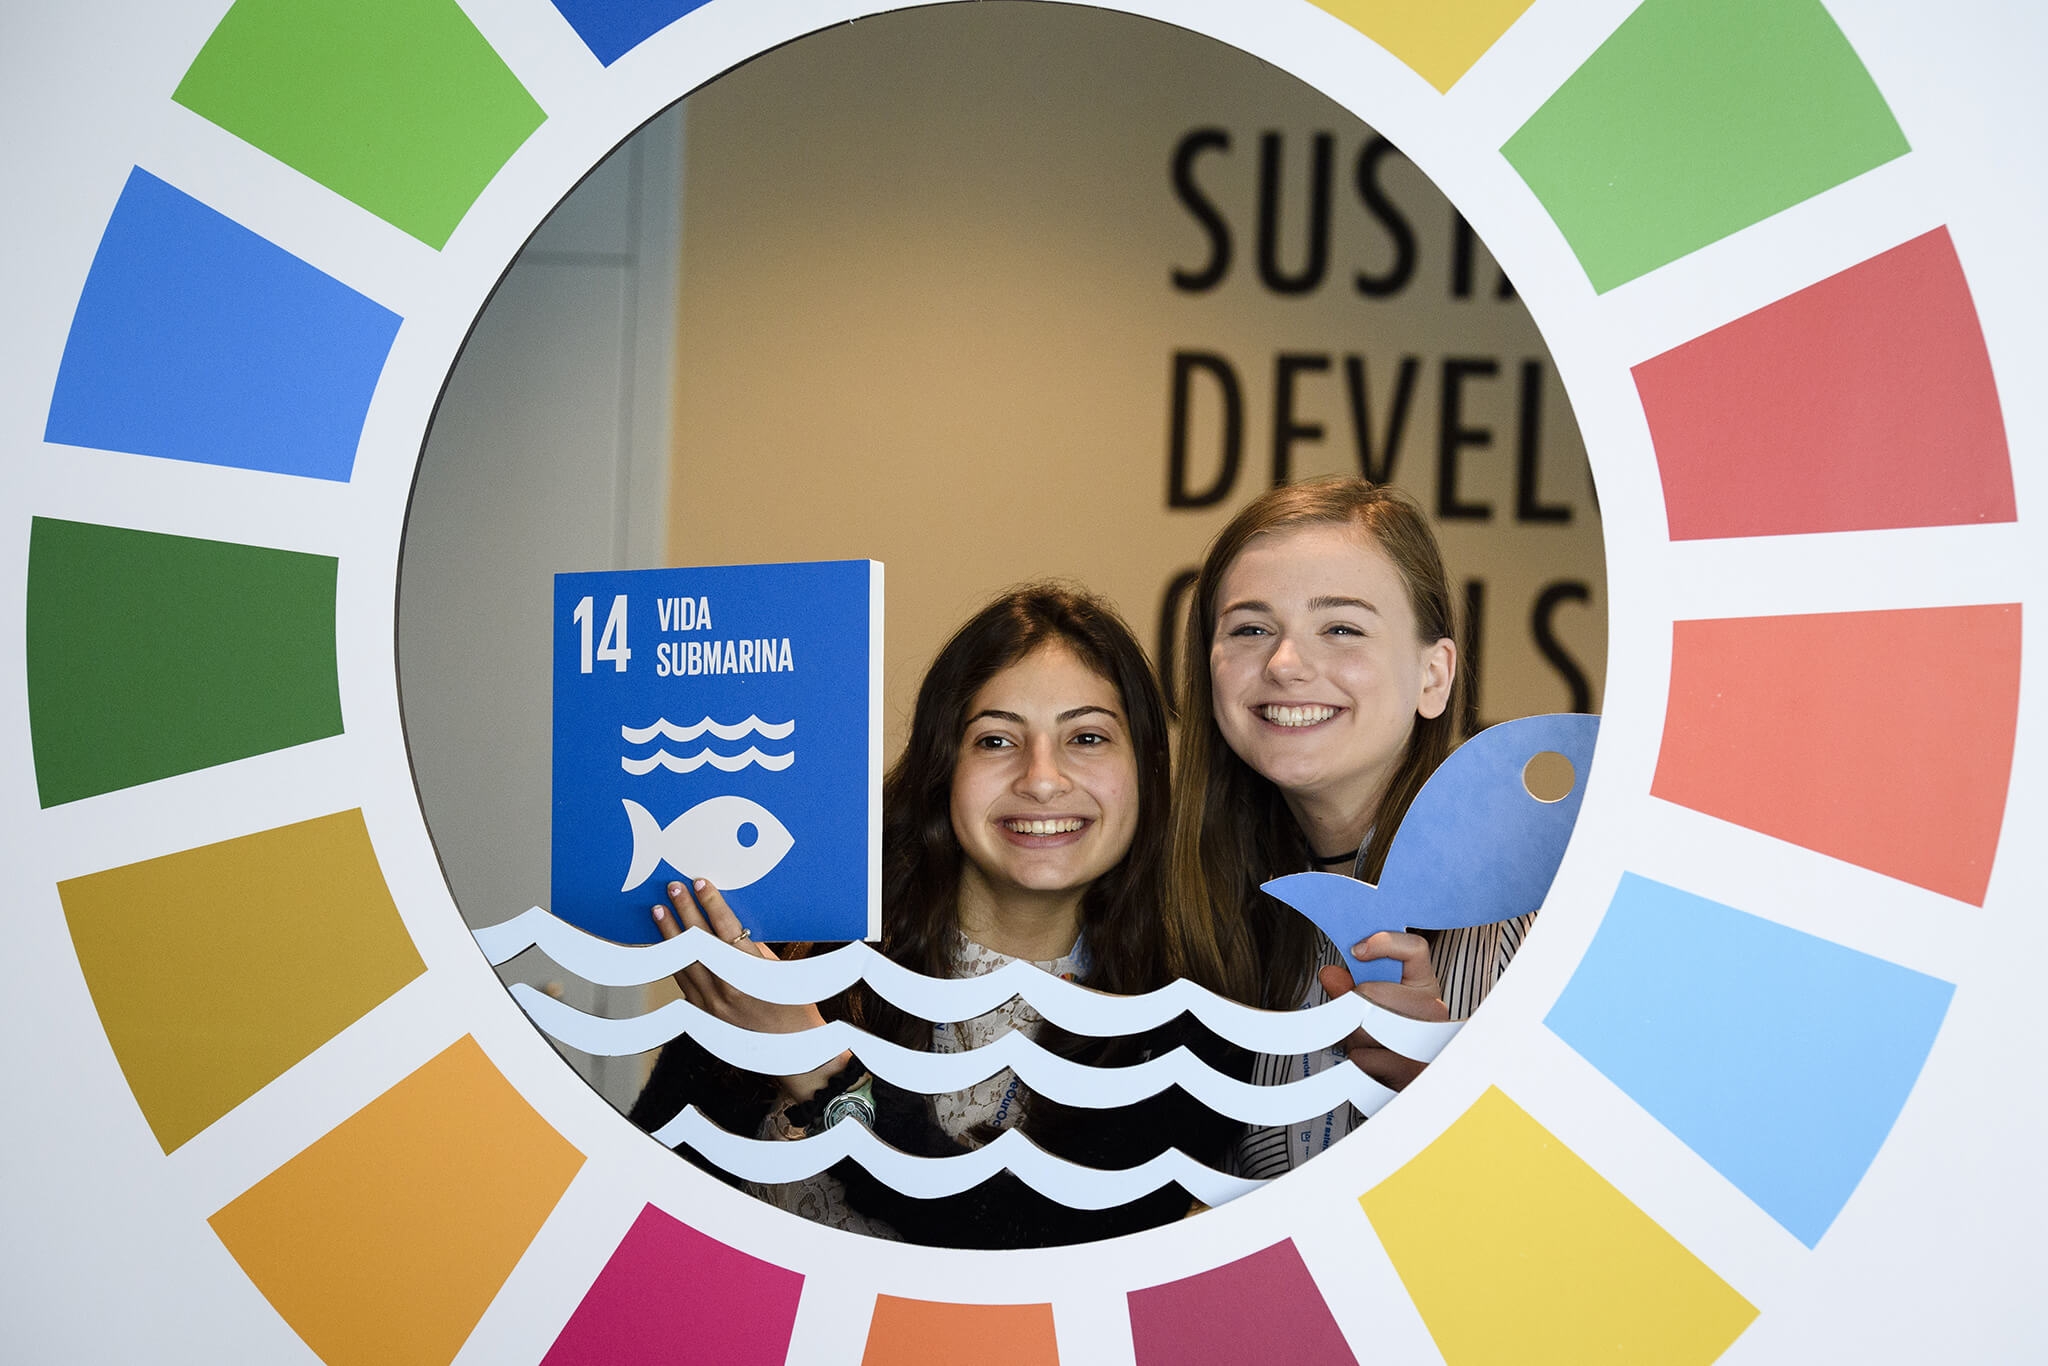 VanNorren-Aandacht voor de Sustainable Development Goals tijdens de UN Ocean Conference in 2017. UN Photo